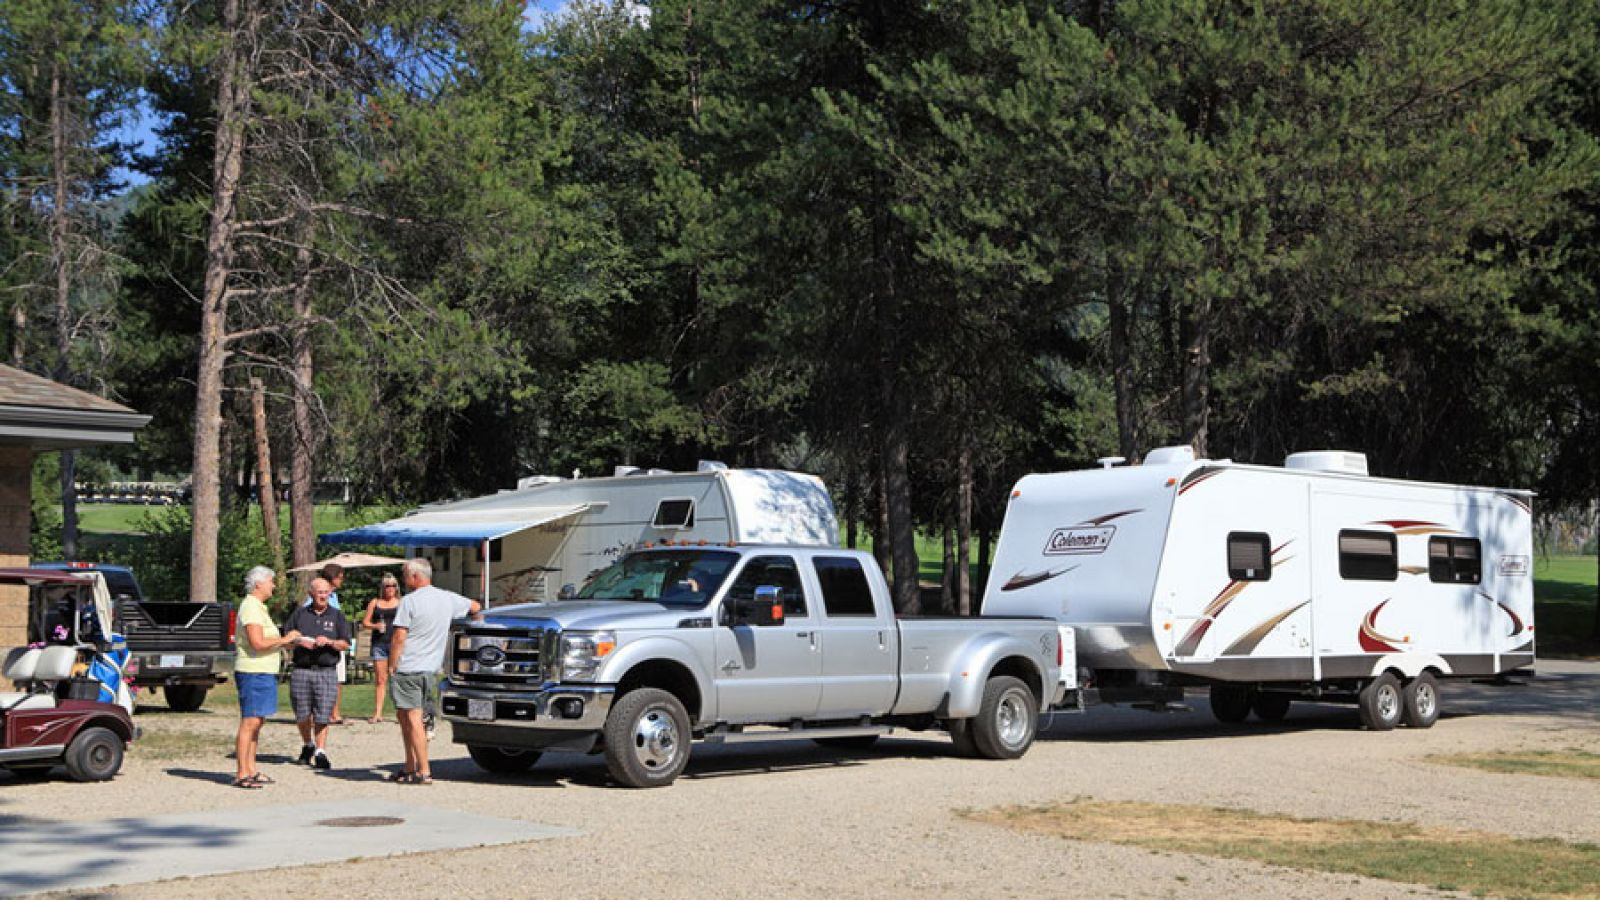 The 20-site RV Park is adjacent to the golf course.